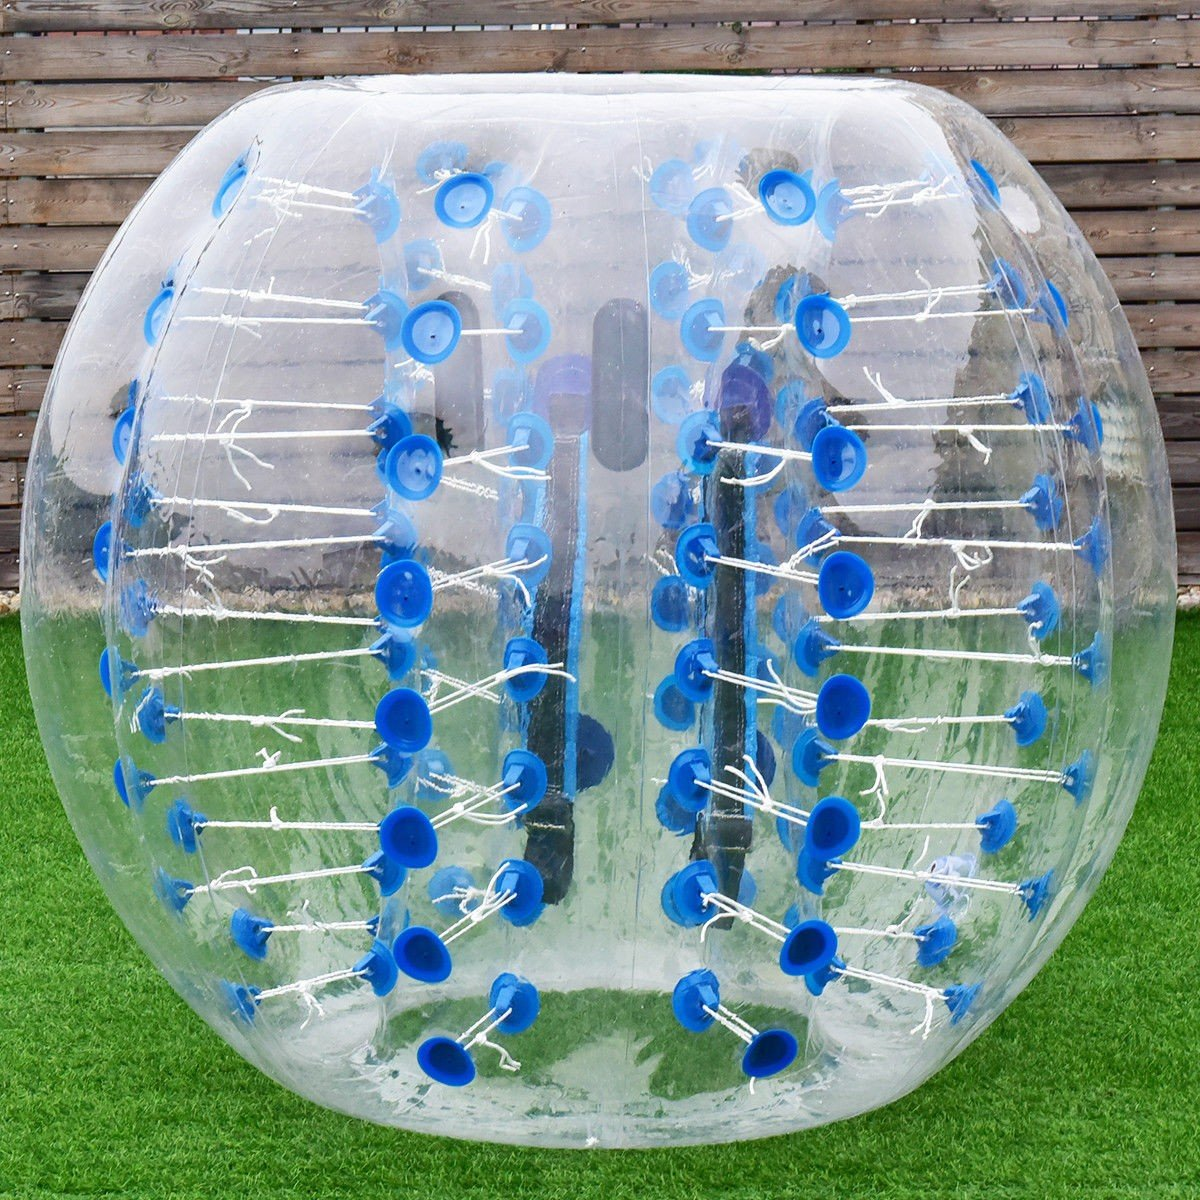 MD Group Inflatable Bumper Ball 1.5M Dia. 5' PVC Lightweight Blue Transparent Waterproof Outdoor Toy by MD Group